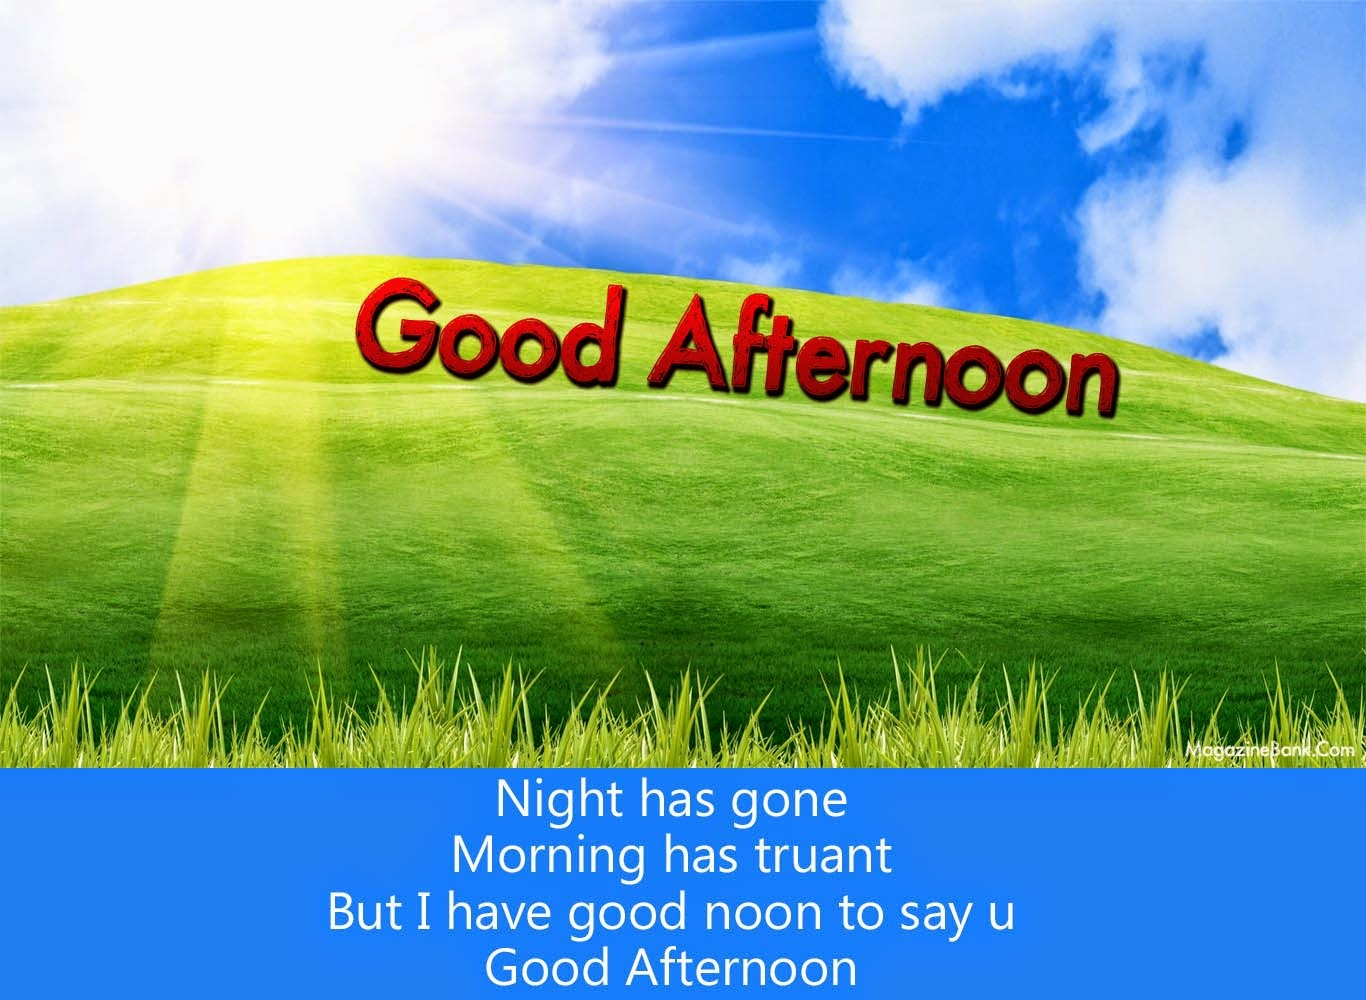 Good afternoon quotes for friends quotesgram - Good Afternoon Quotes Quotesgram